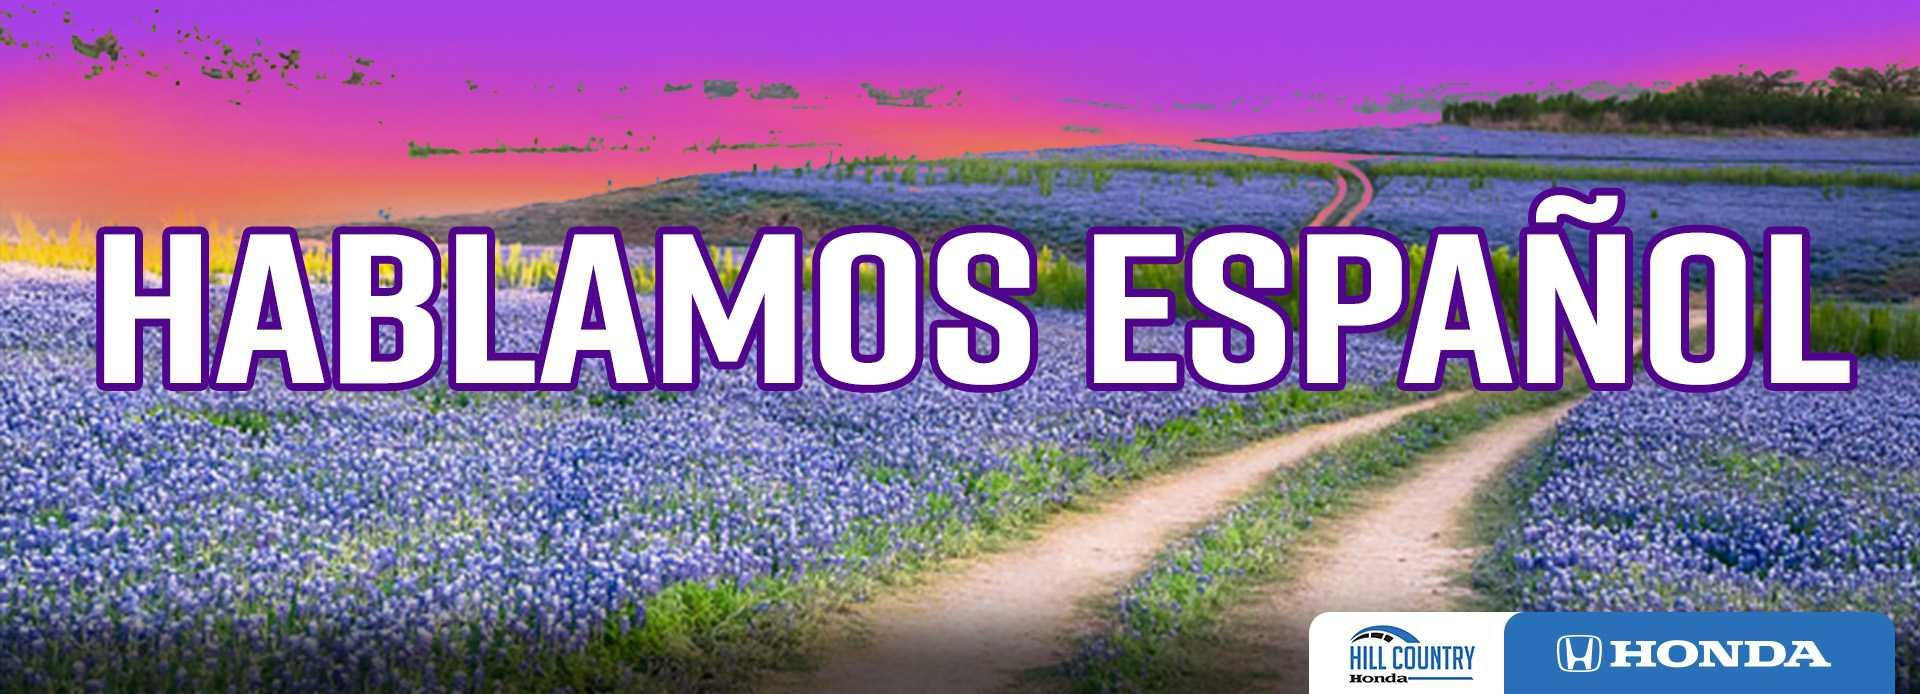 We speak Spanish banner